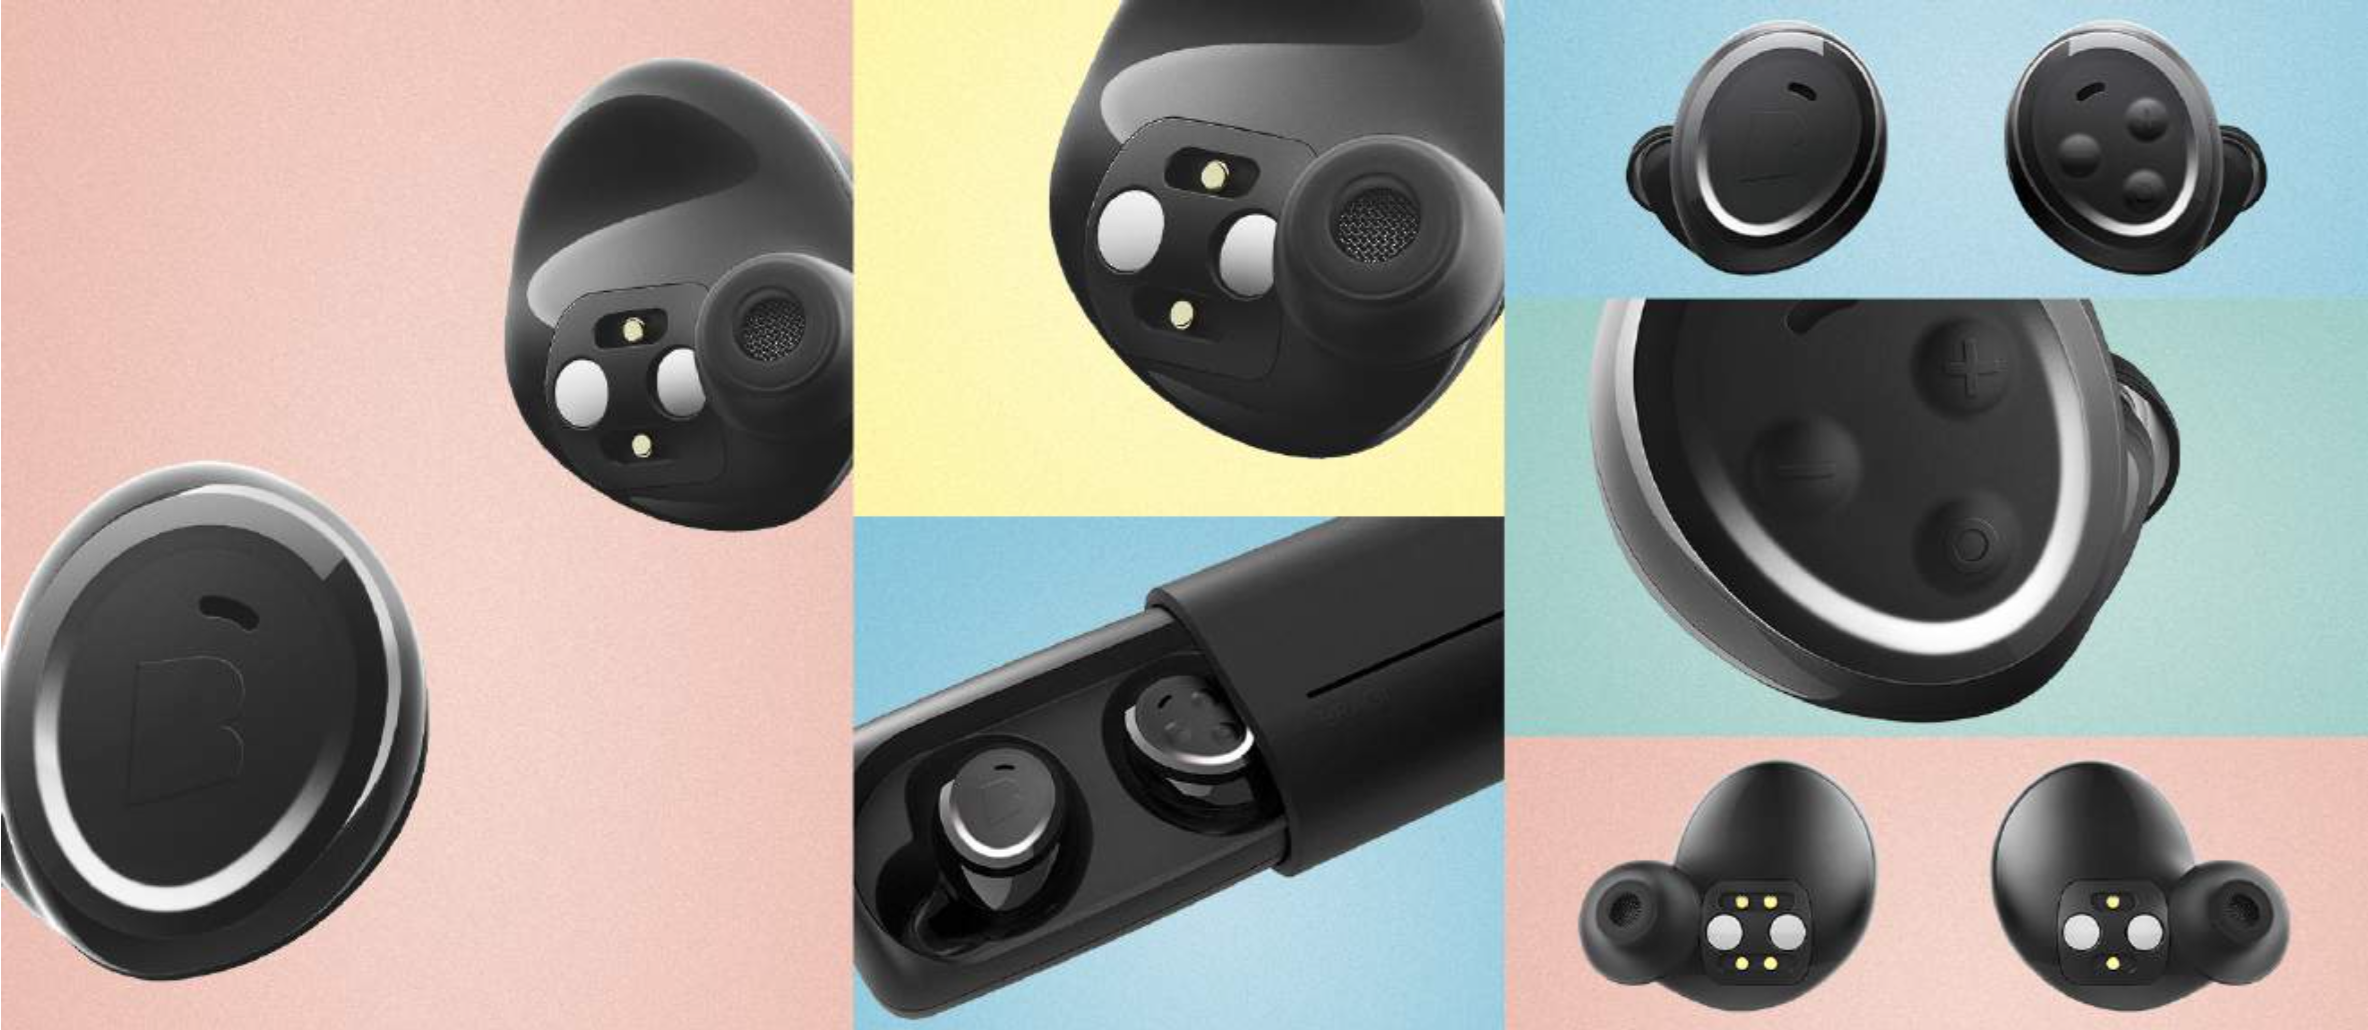 bragi s new wireless earbuds are simpler and a lot cheaper the verge. Black Bedroom Furniture Sets. Home Design Ideas